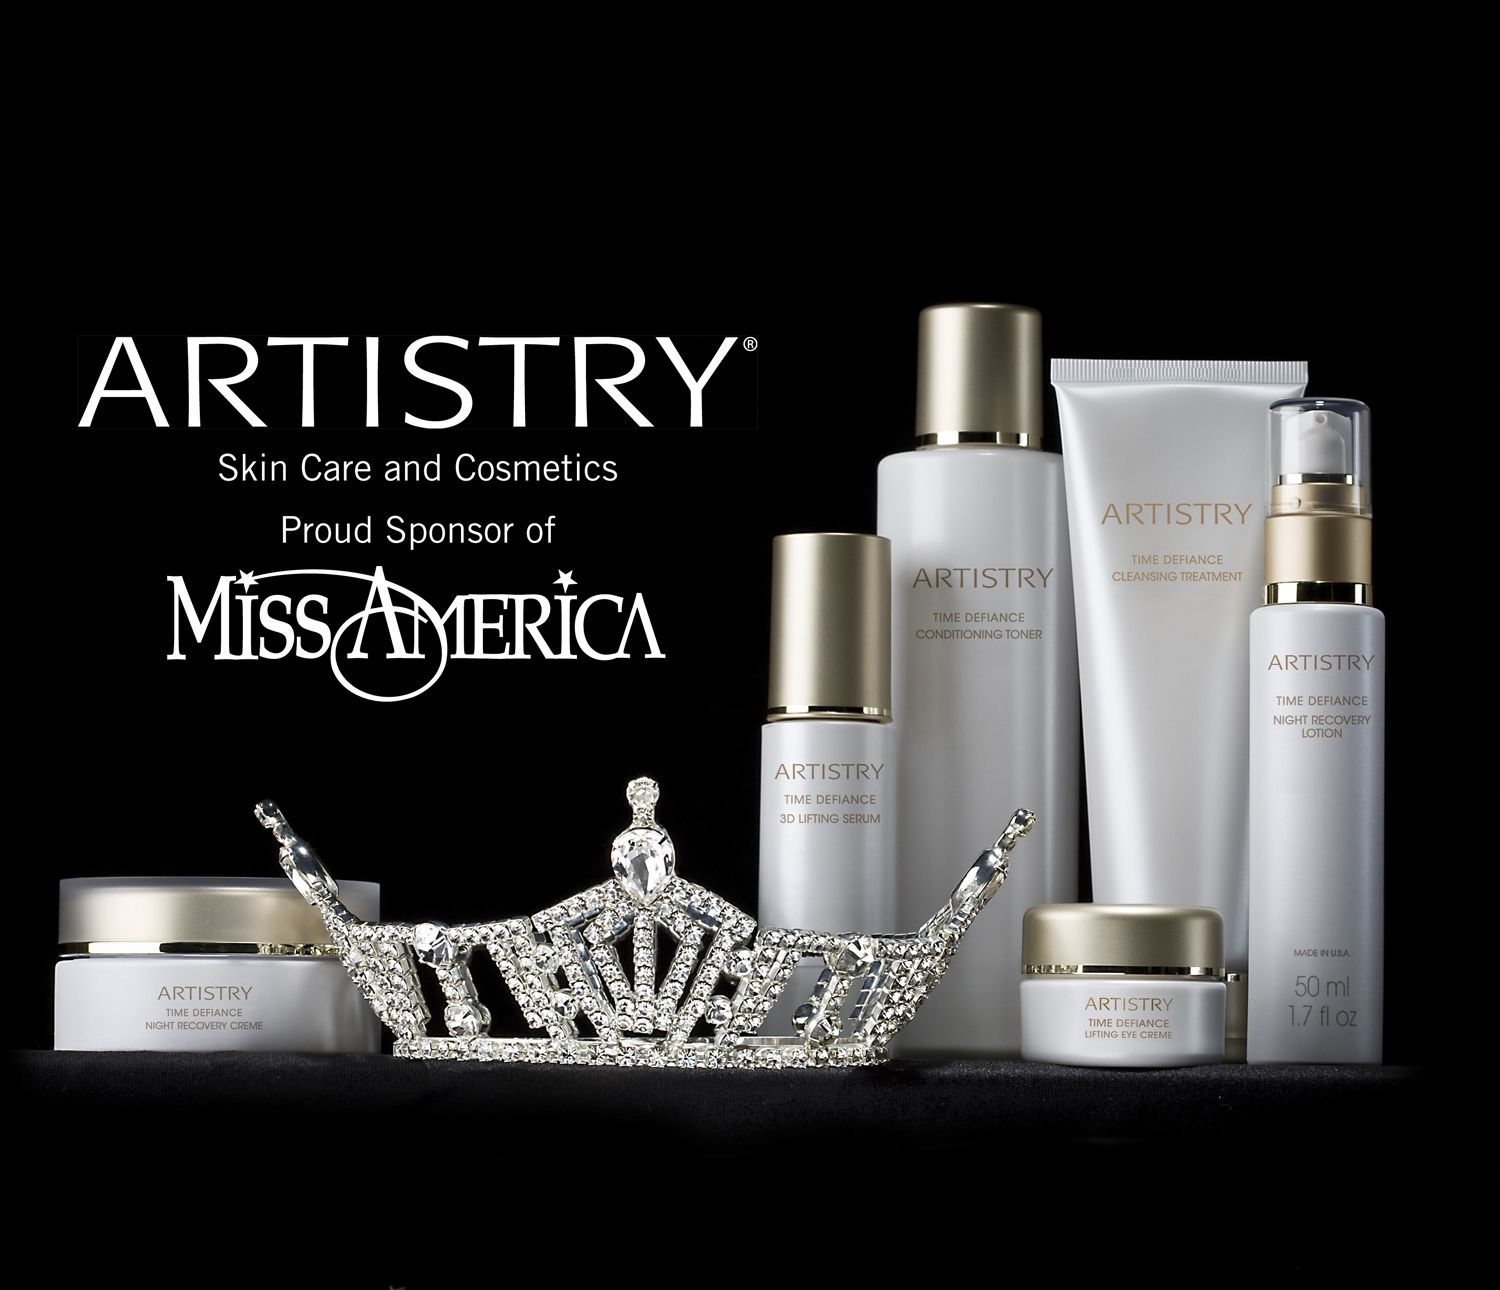 amway global and artistryr partner with the miss america